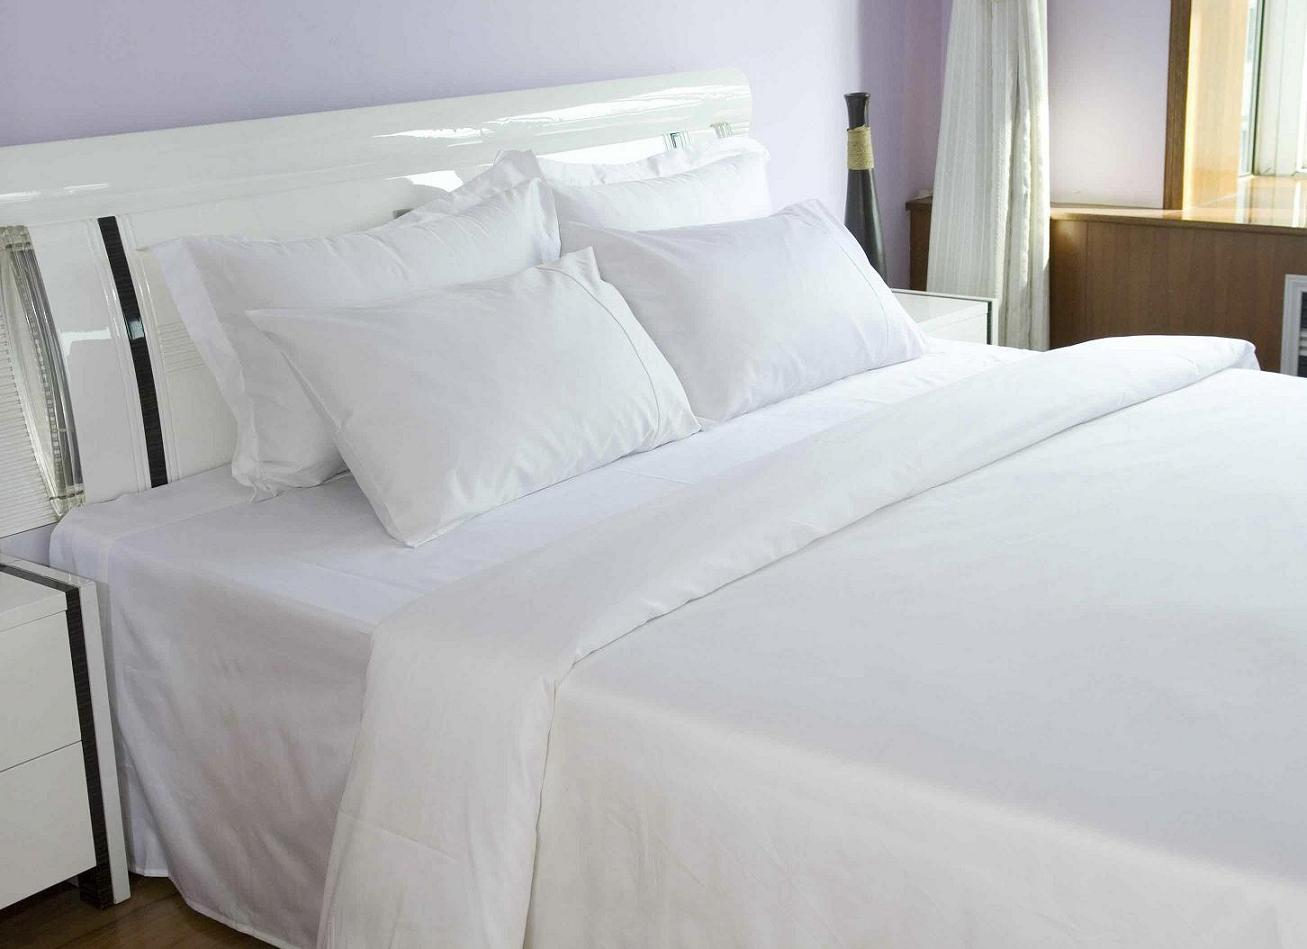 Bed Sheet King Size 100 X 112 Cotton 20 S Count